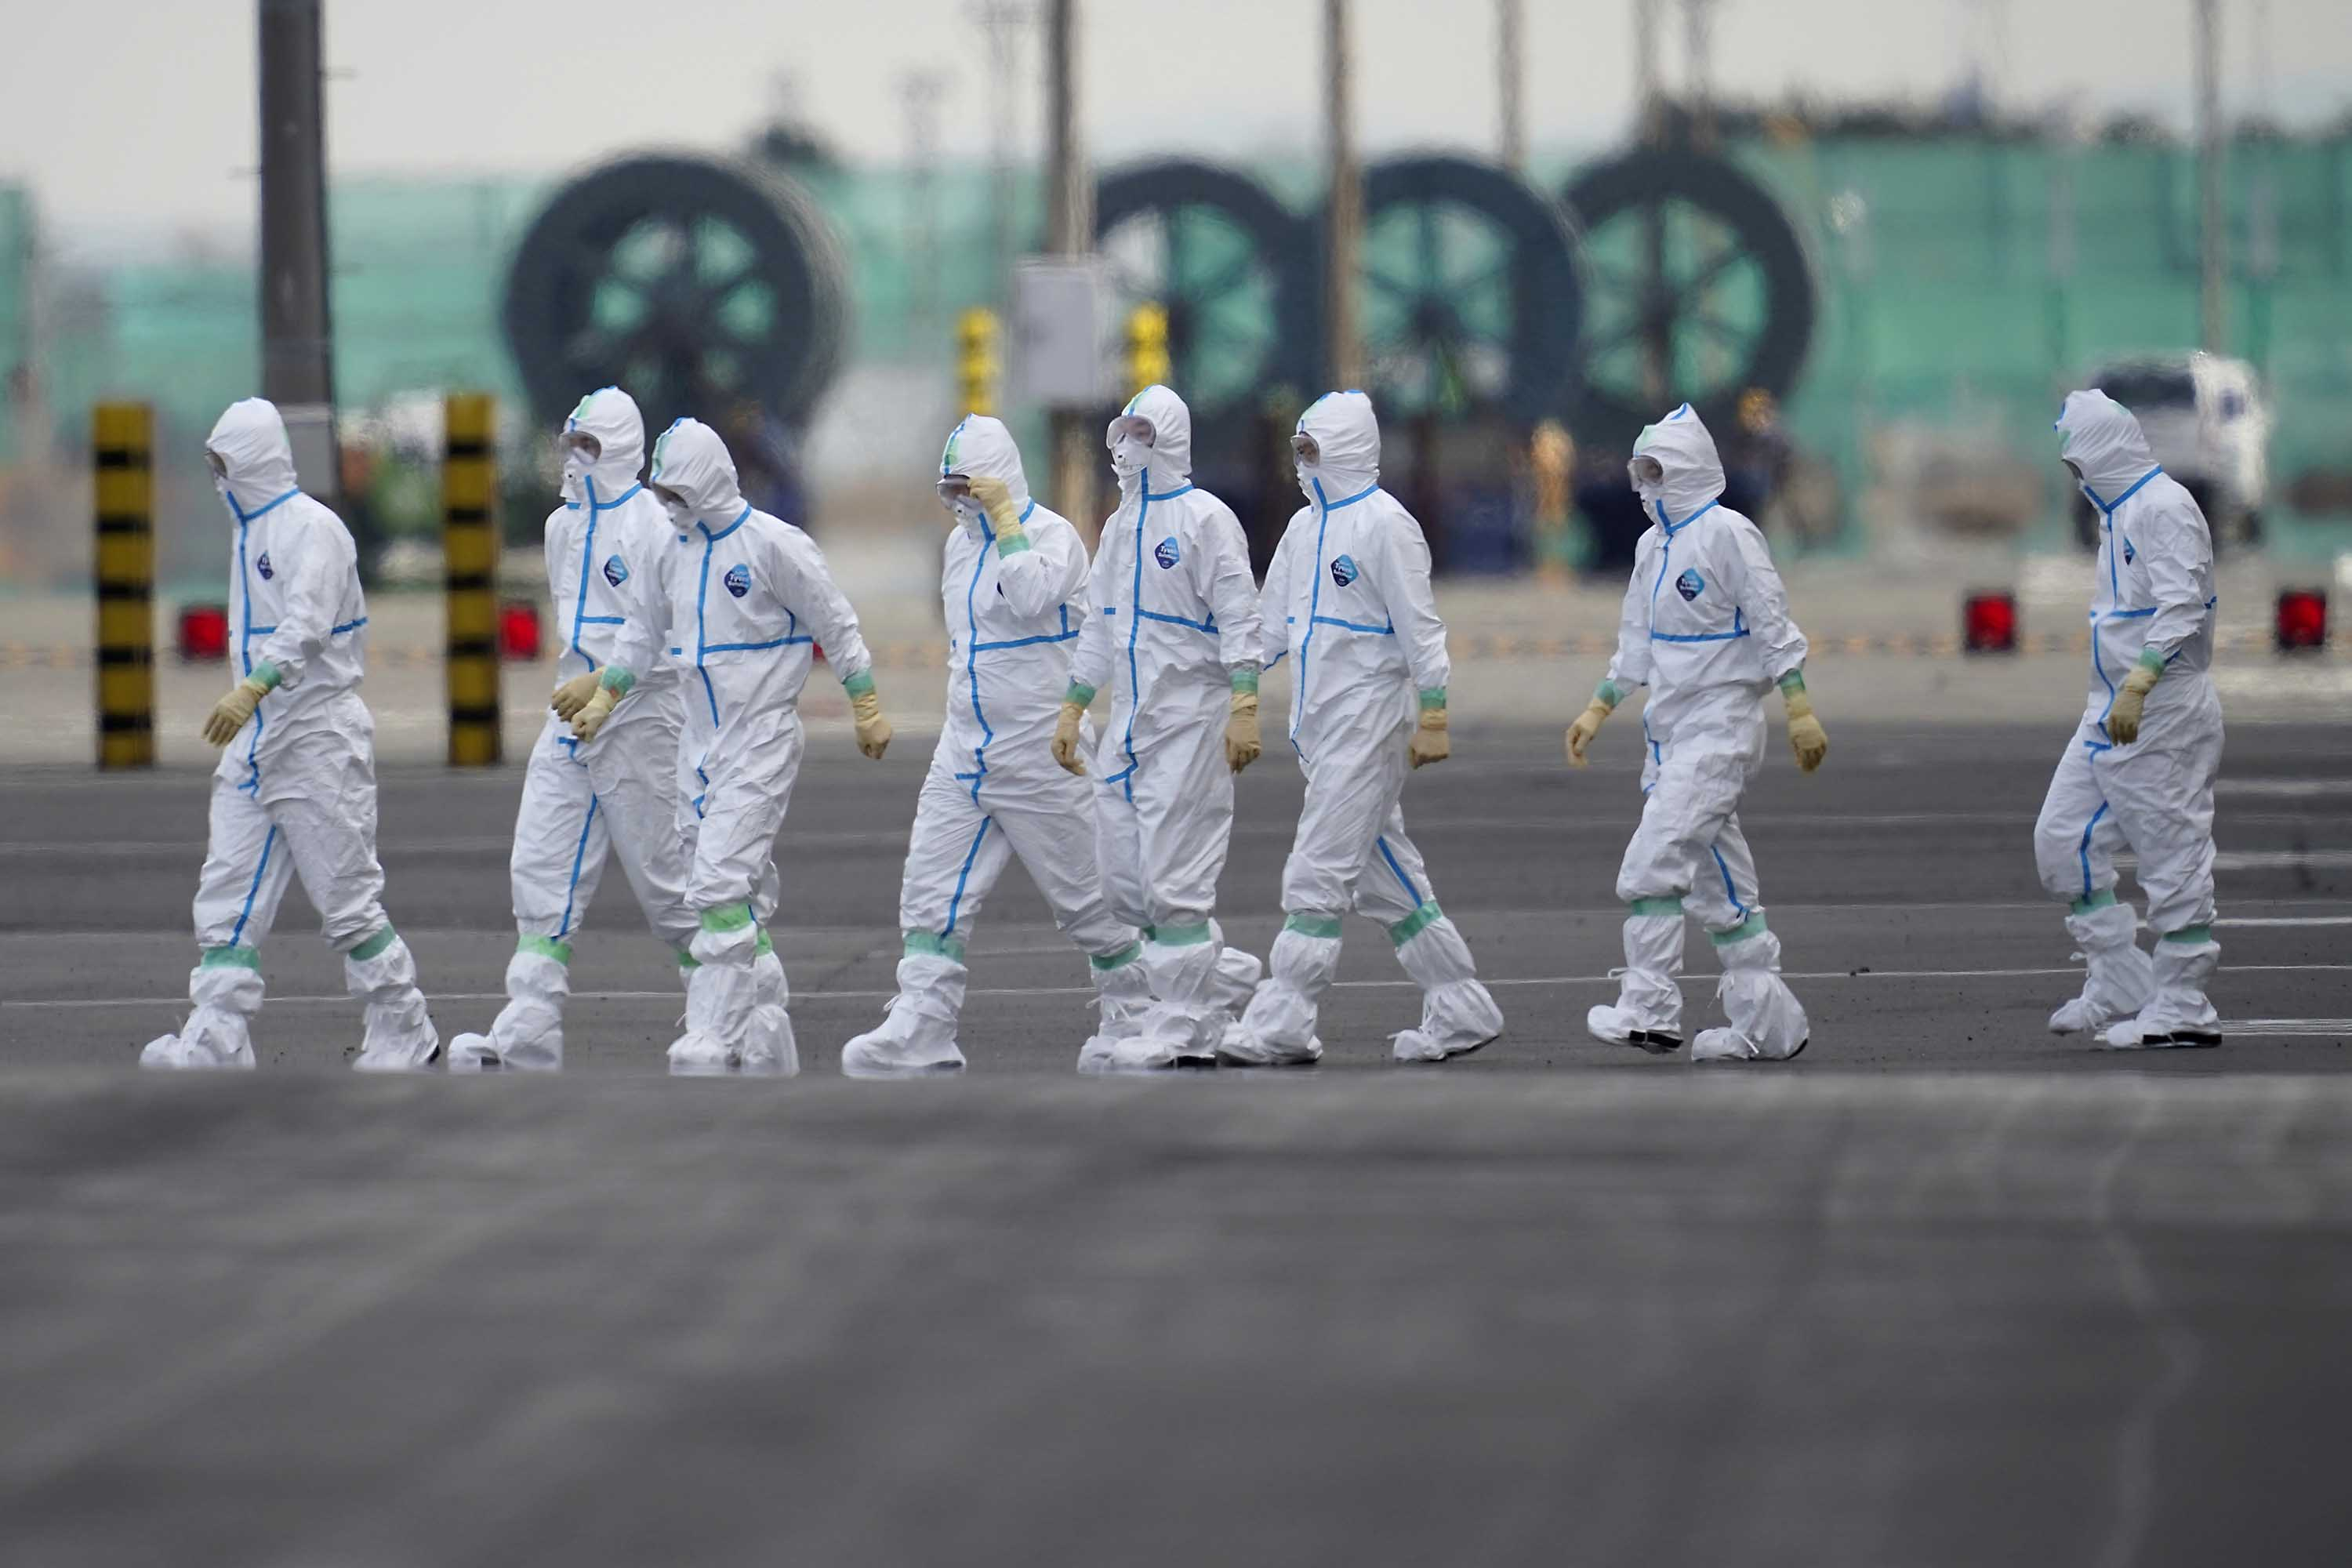 Workers in protective gear are seen near the Diamond Princess cruise ship docked in Yokohama, Japan on Friday.